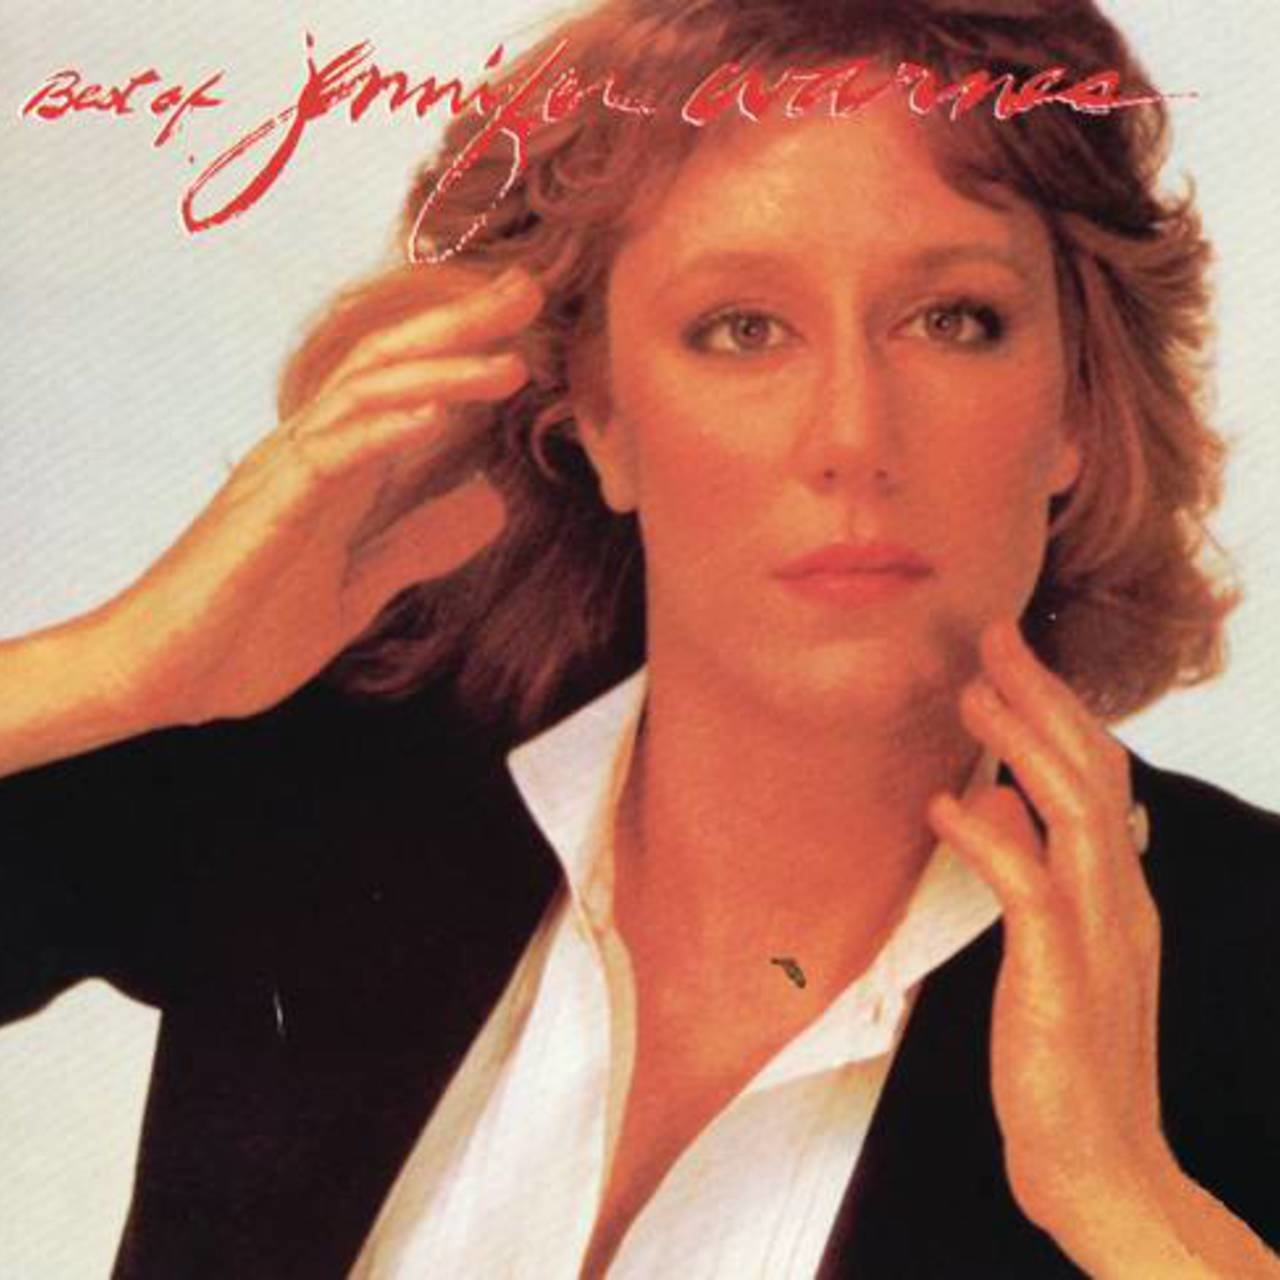 Best Of Jennifer Warnes